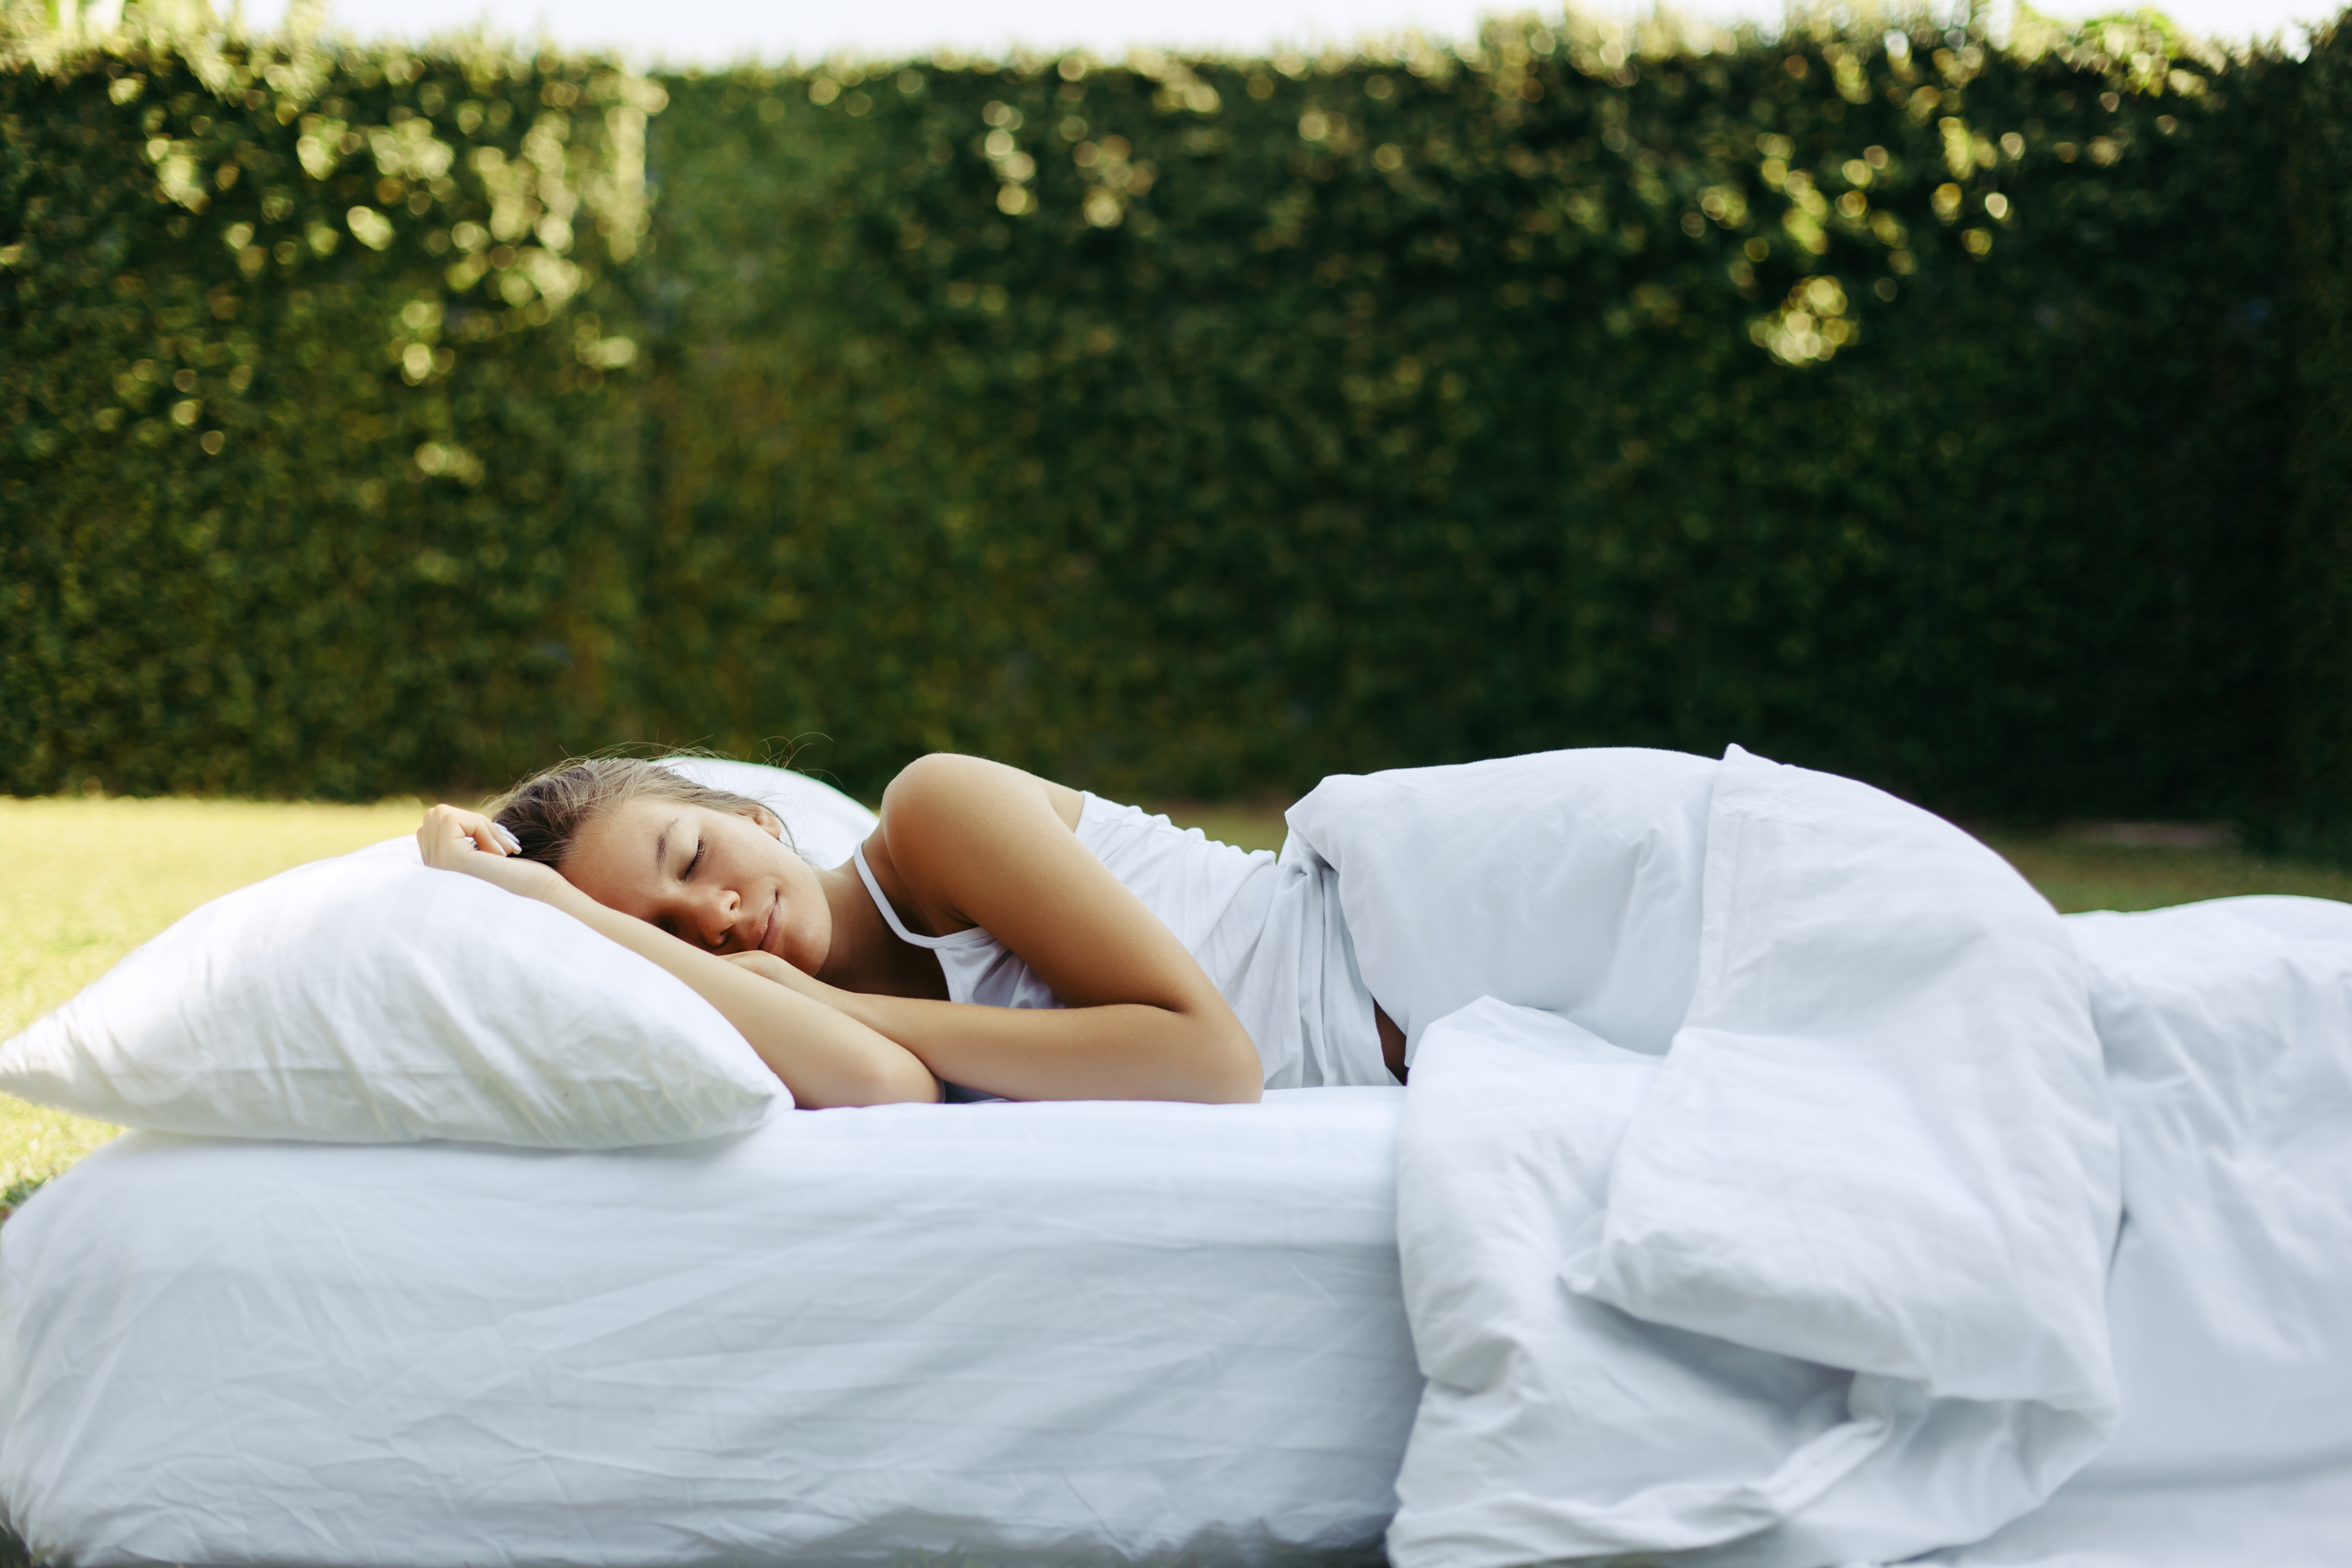 self hypnosis for sleep as solution for insomnia and for waking up in the middle of the night with insomnia